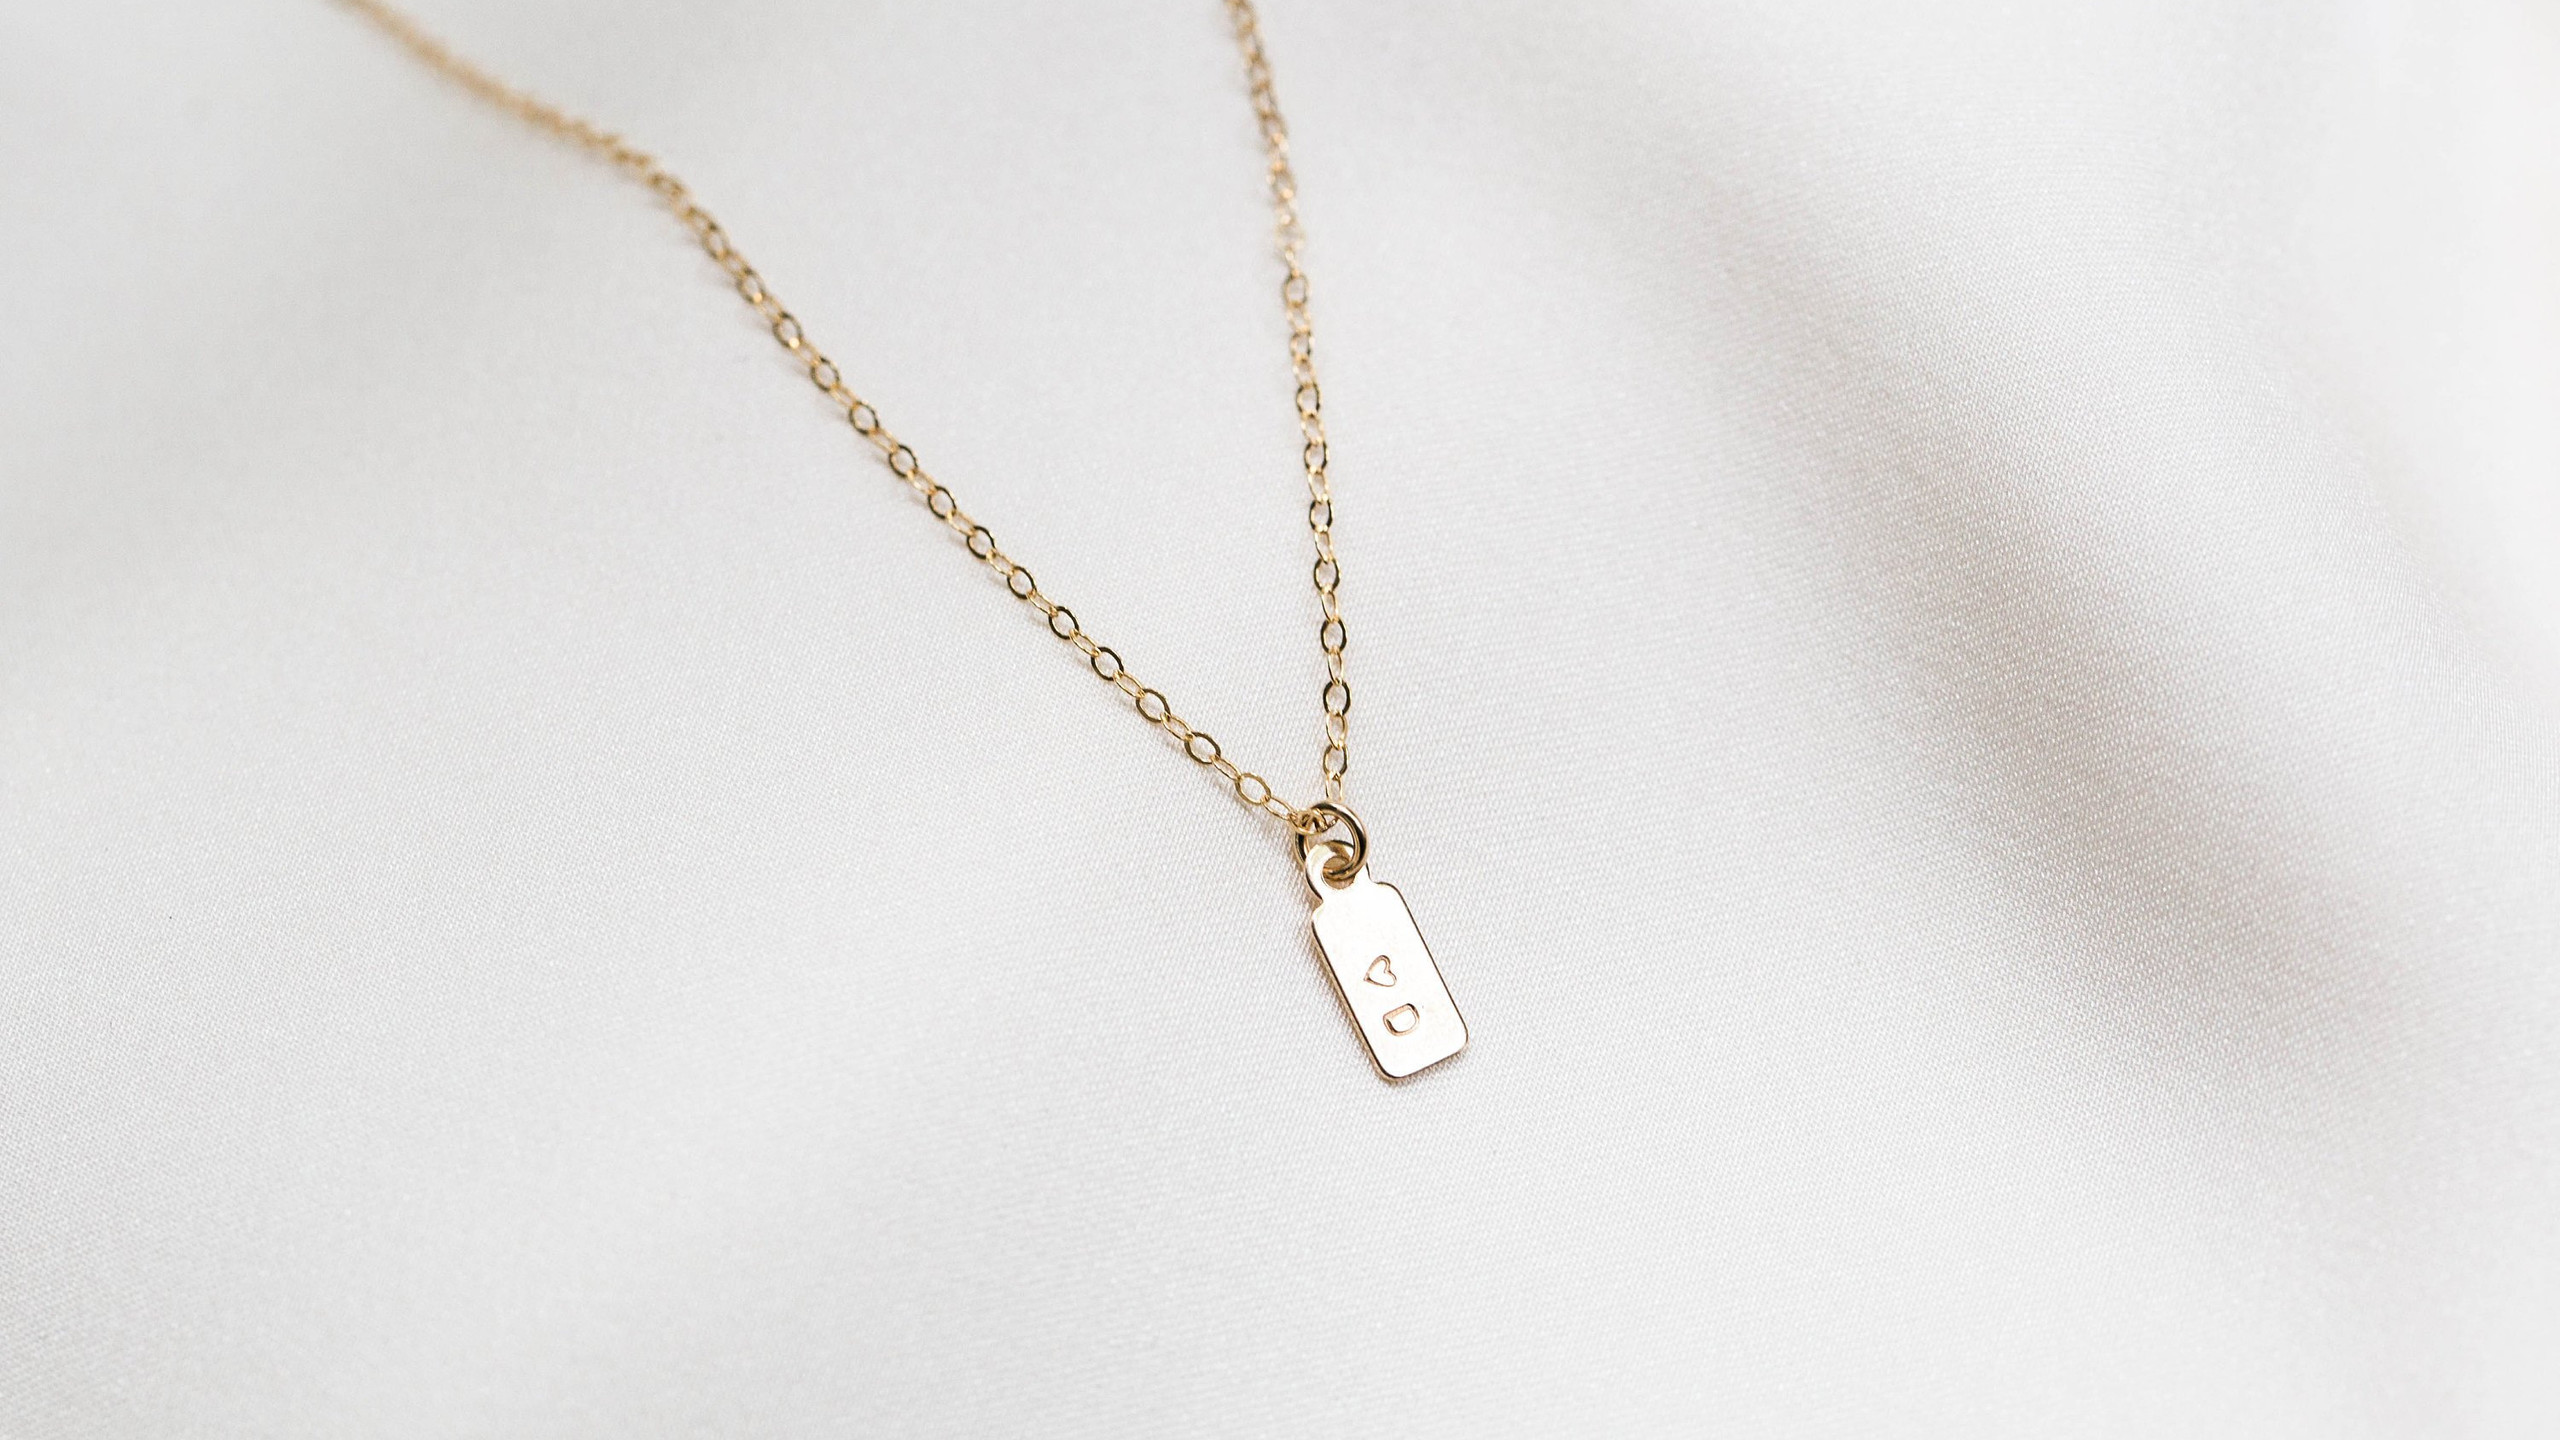 Gold Personalized Necklace from Simple Dainty Jewelry